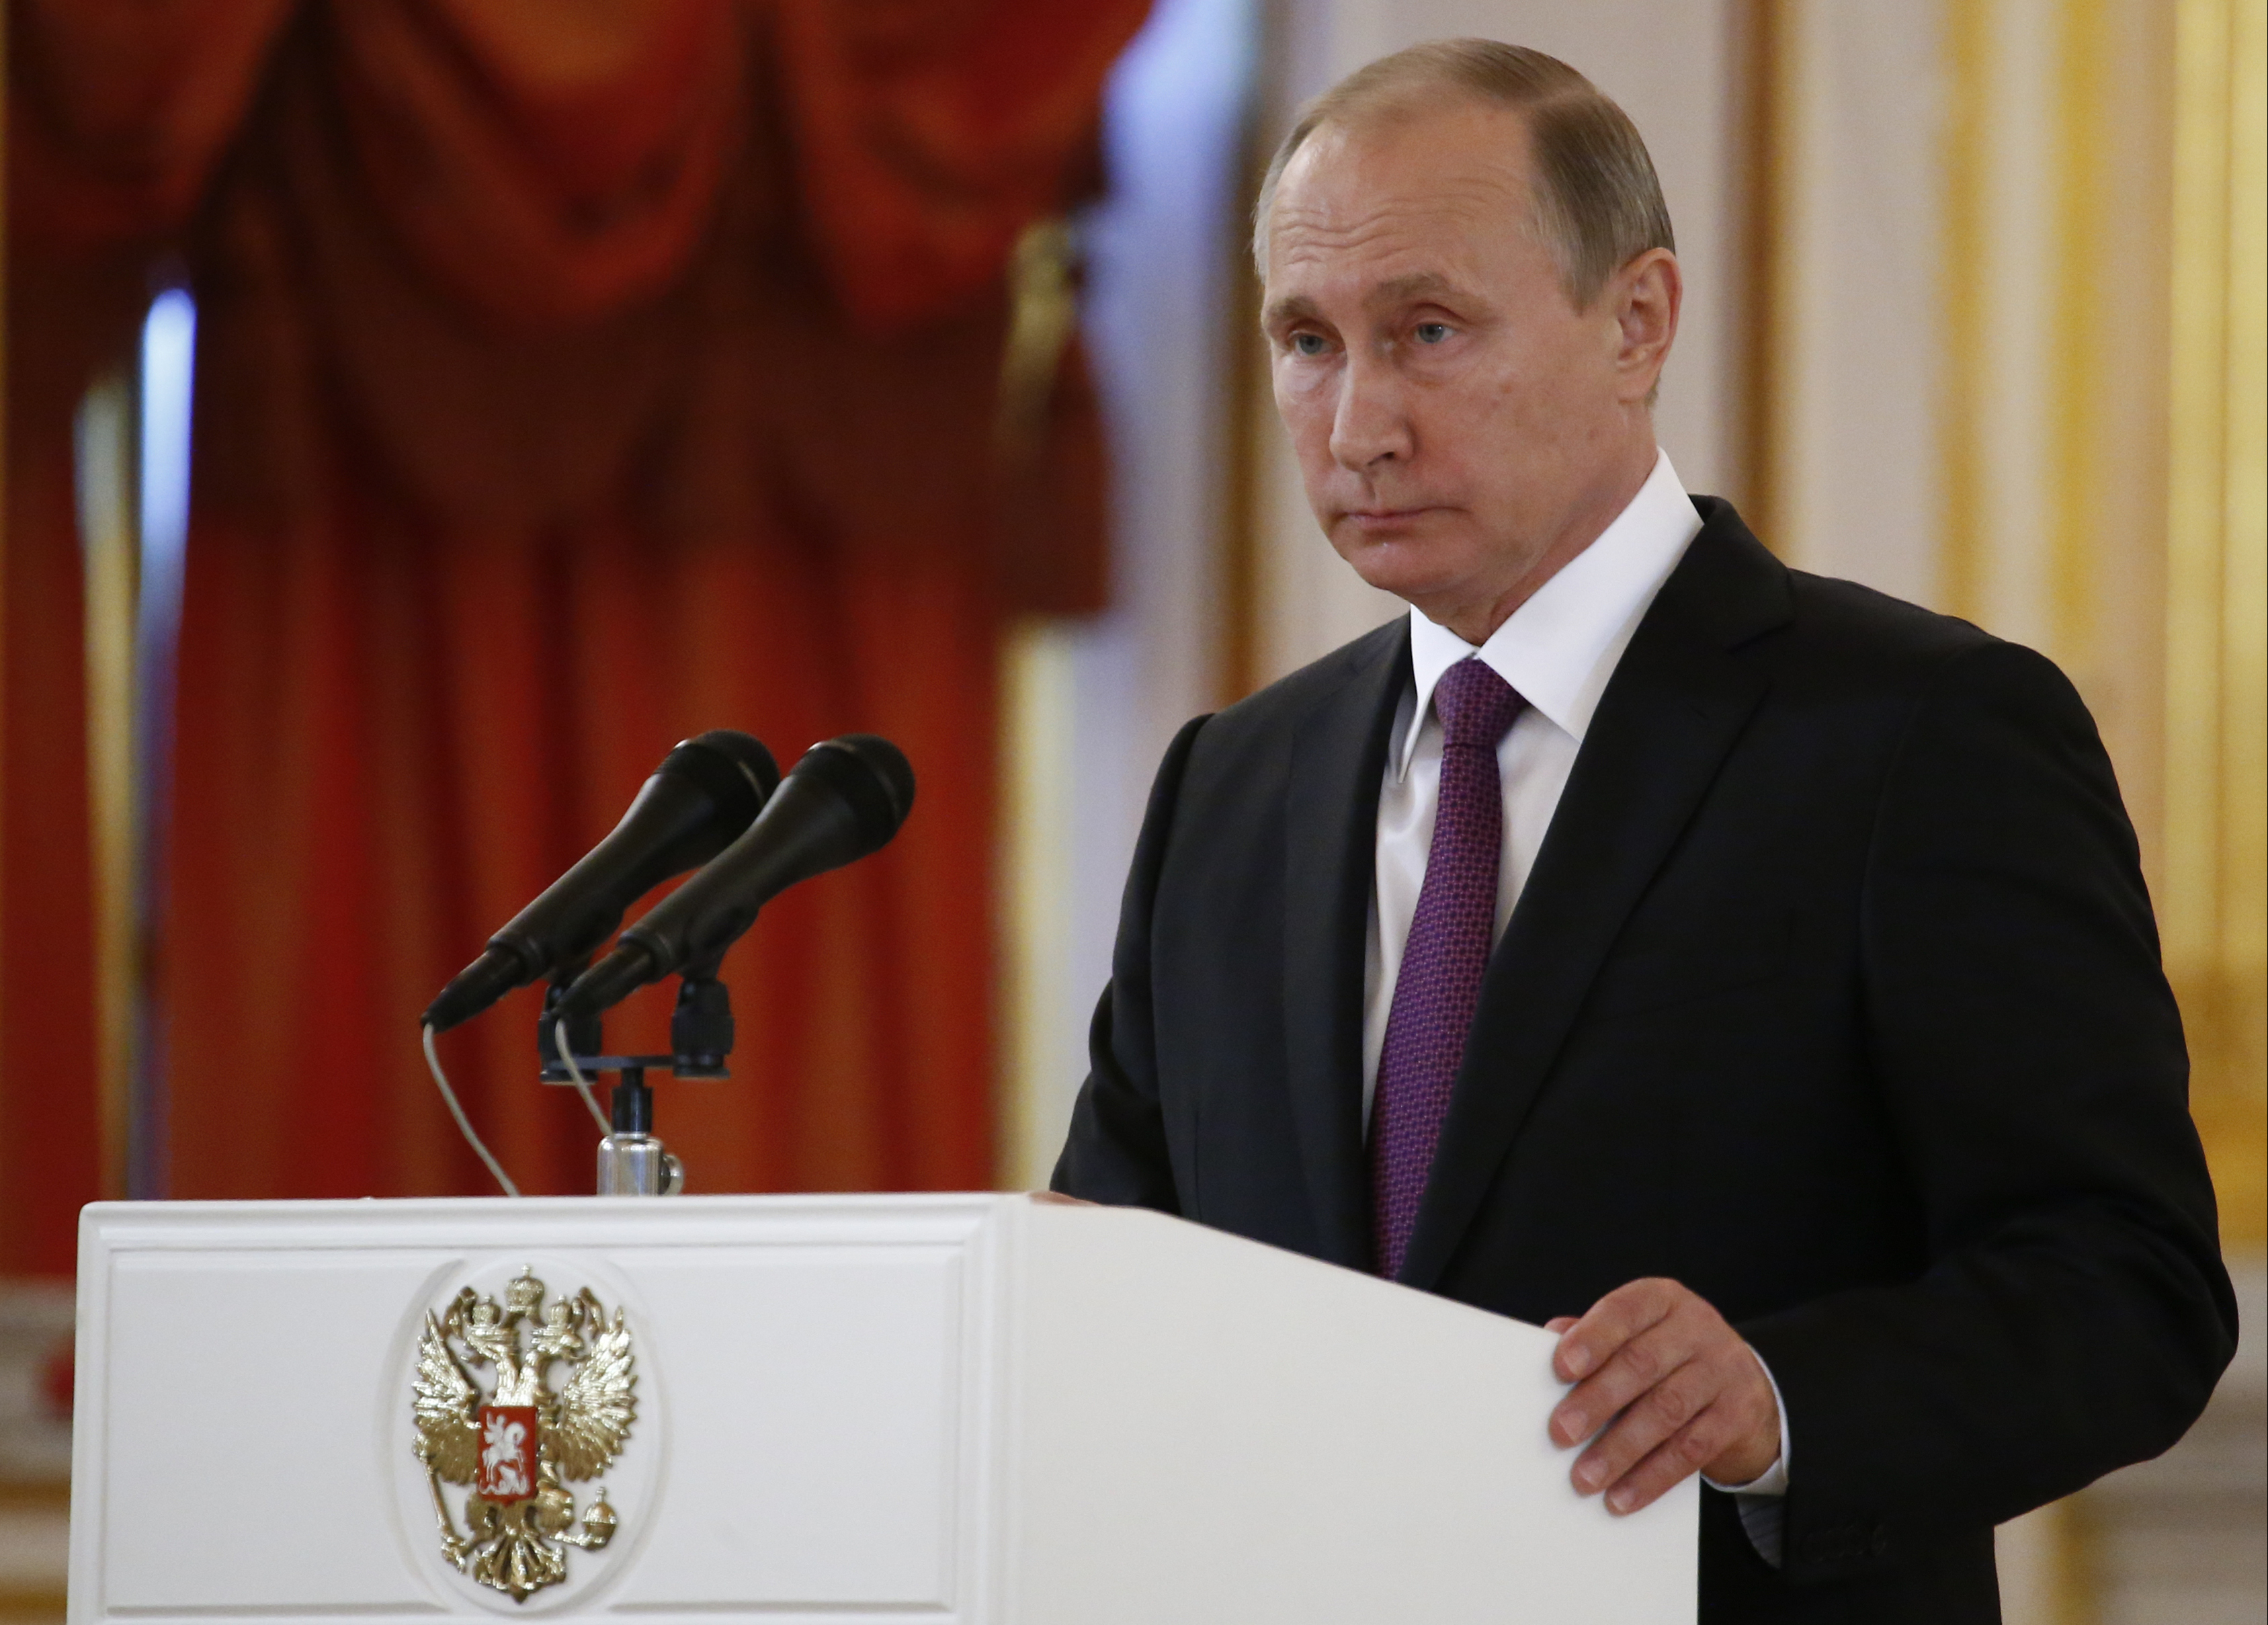 Russian President Vladimir Putin speaks at the Kremlin on Wednesday. Putin says that Moscow hopes to restore good relations with the United States in the wake of the election of Donald Trump.